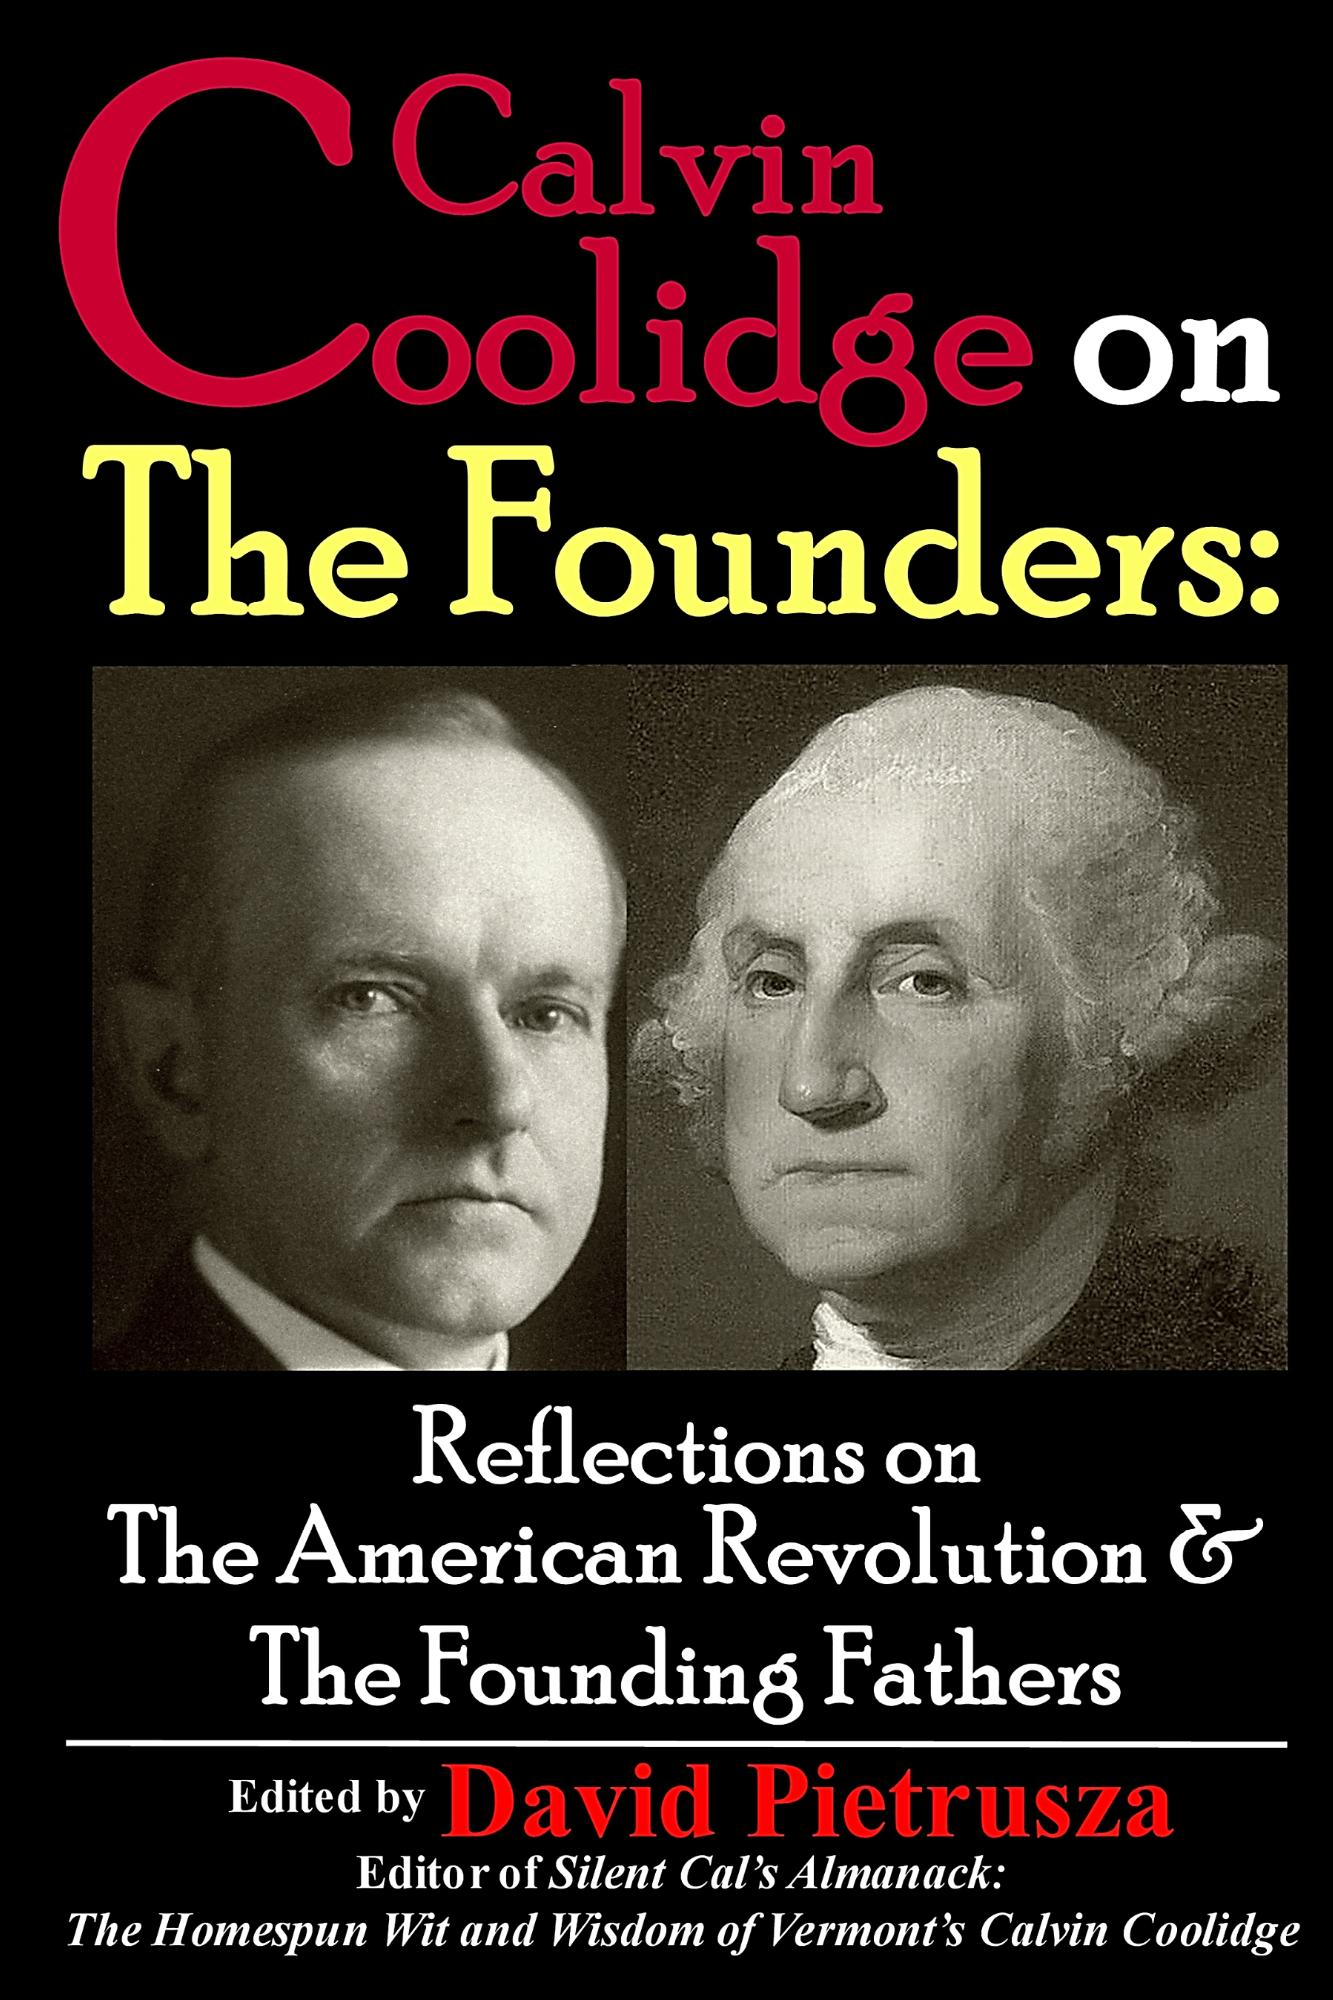 Calvin Coolidge on the Founders